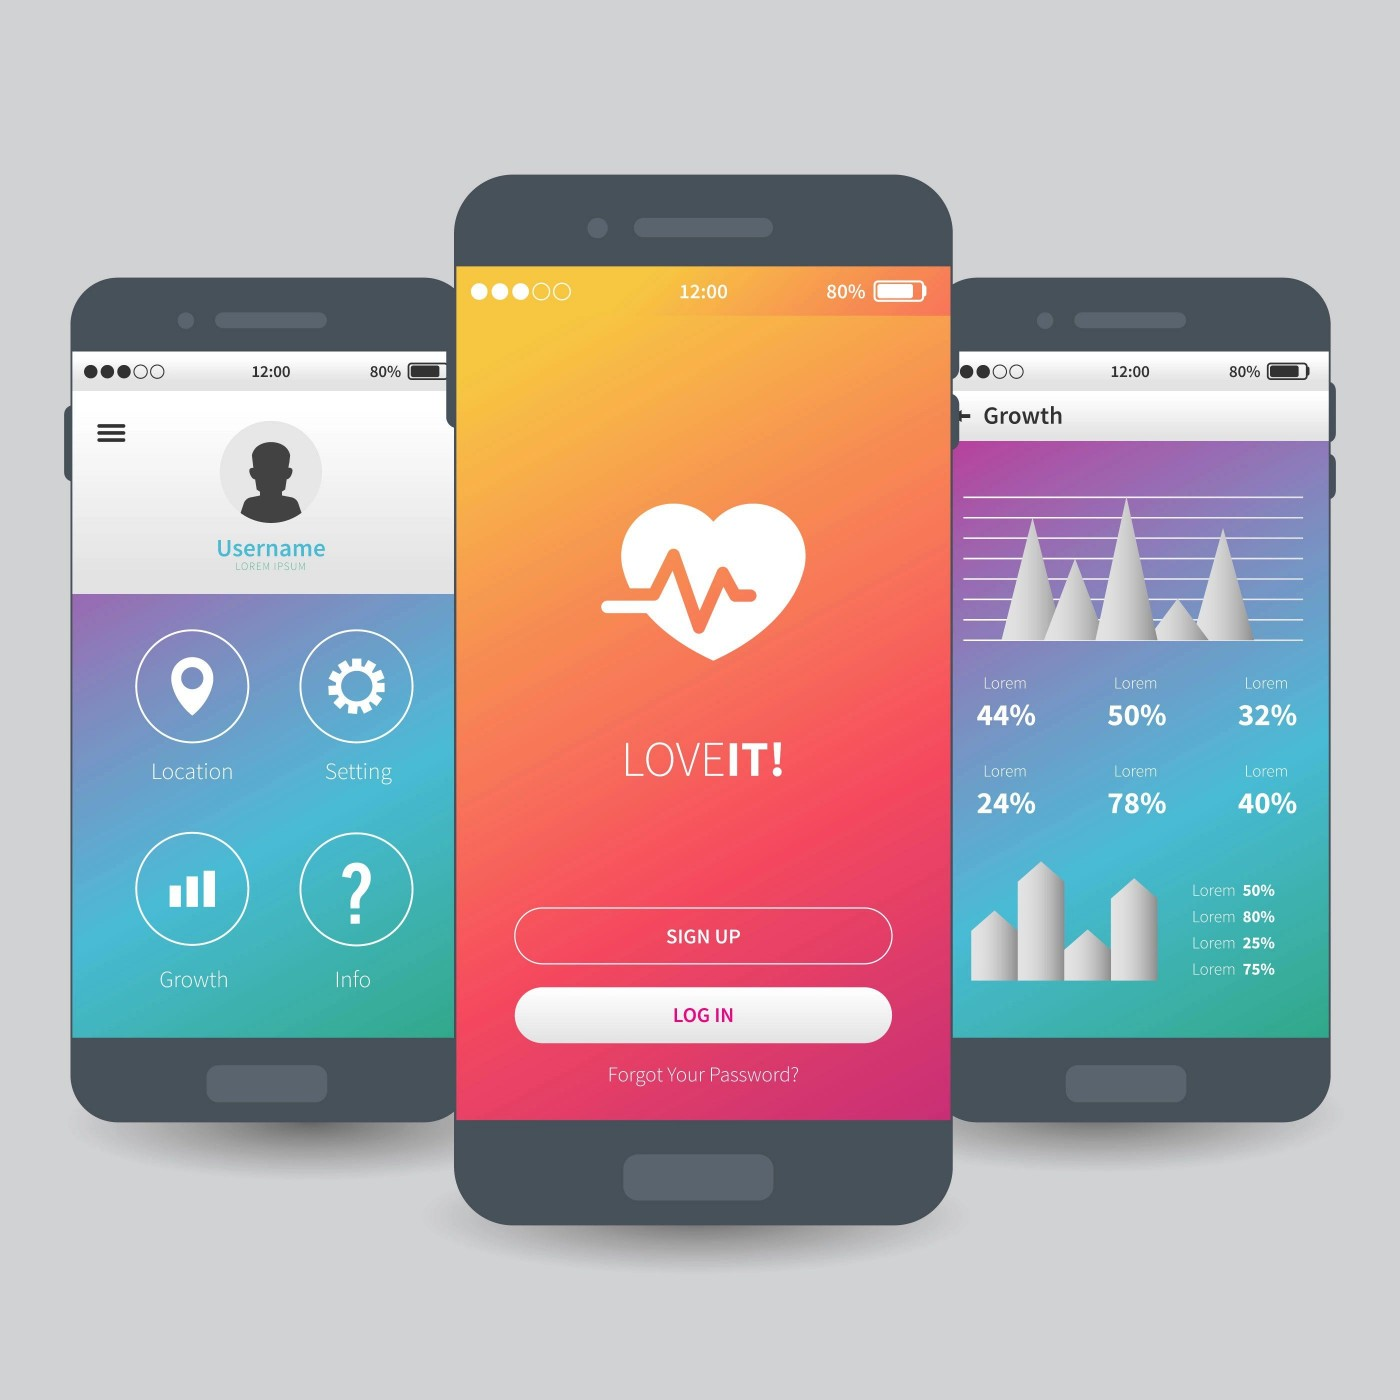 005 Remarkable Mobile App Design Template Example  Size Adobe Xd Ui Psd Free Download1400